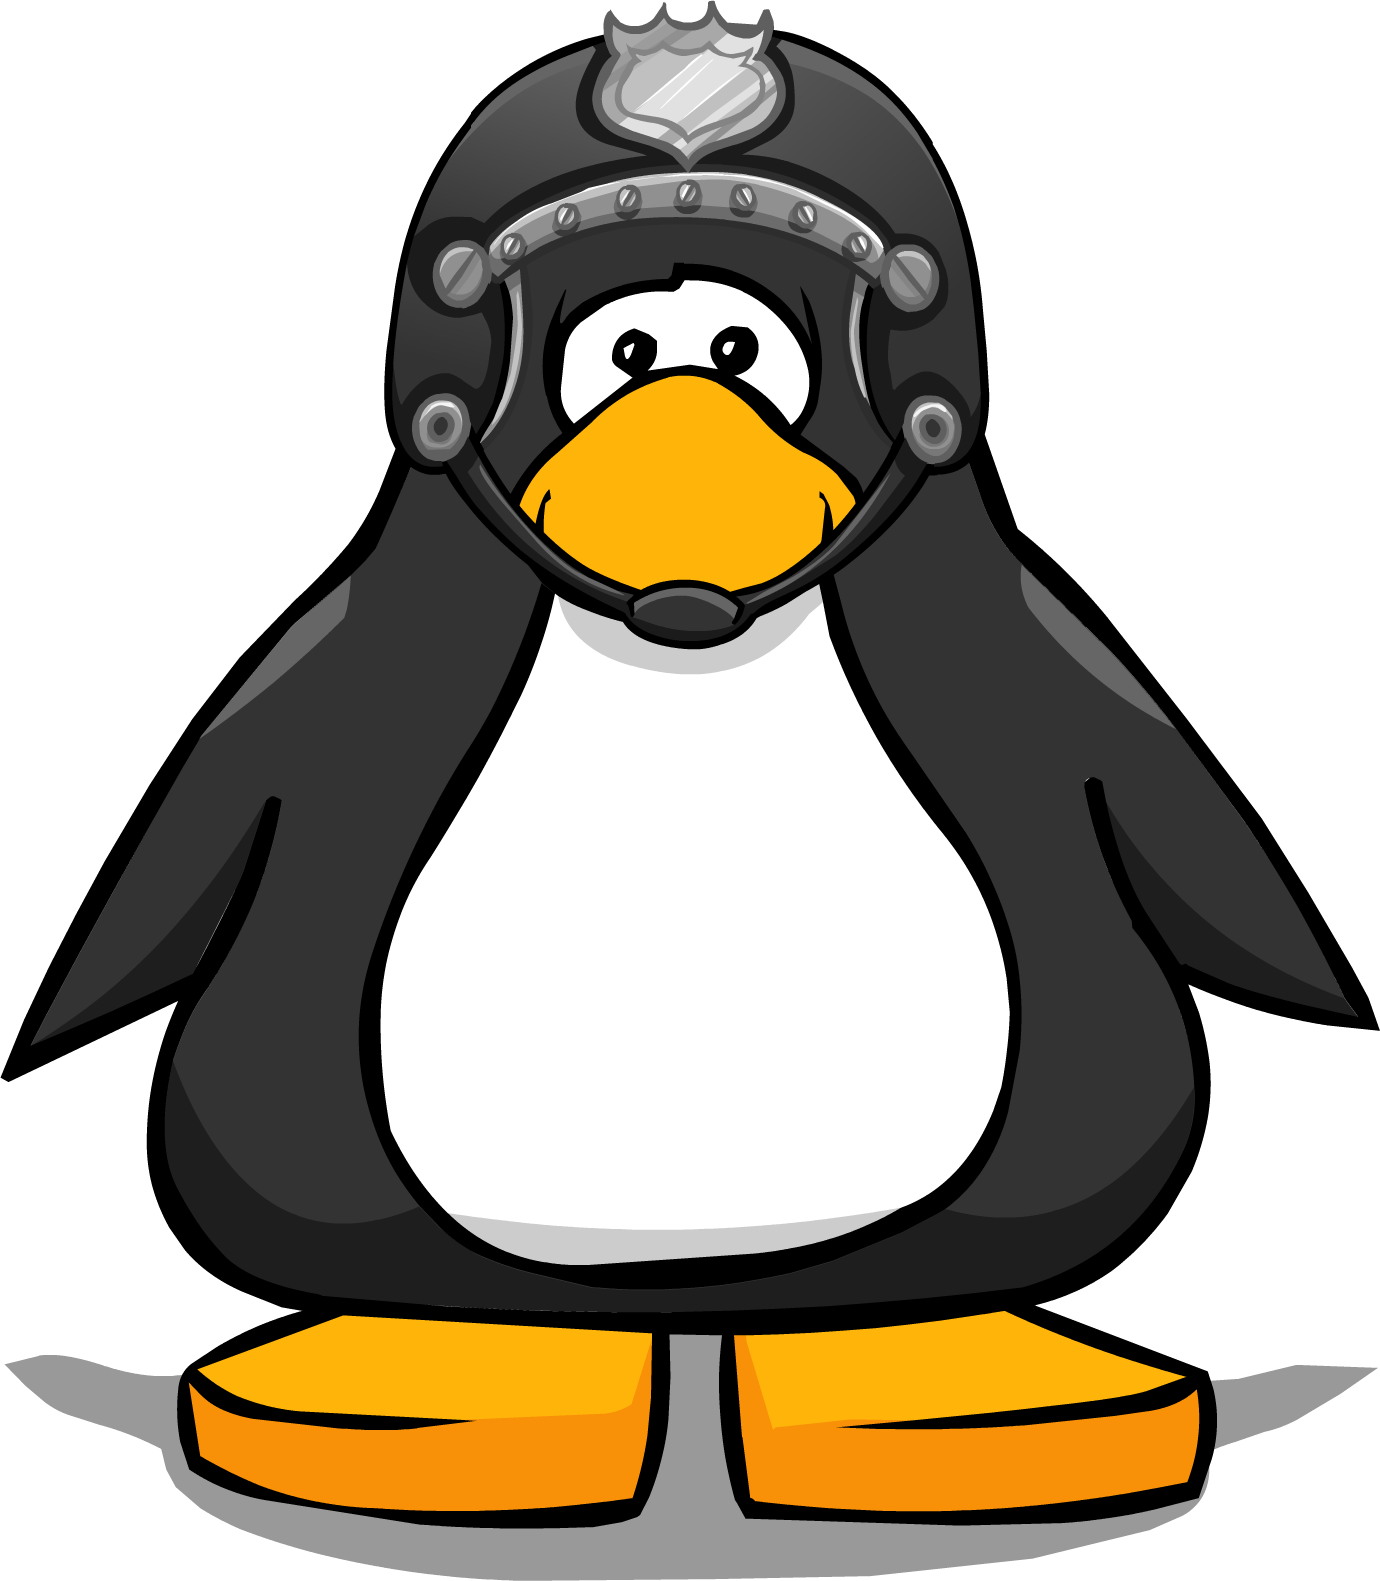 Helmet clipart policeman. Image police from a